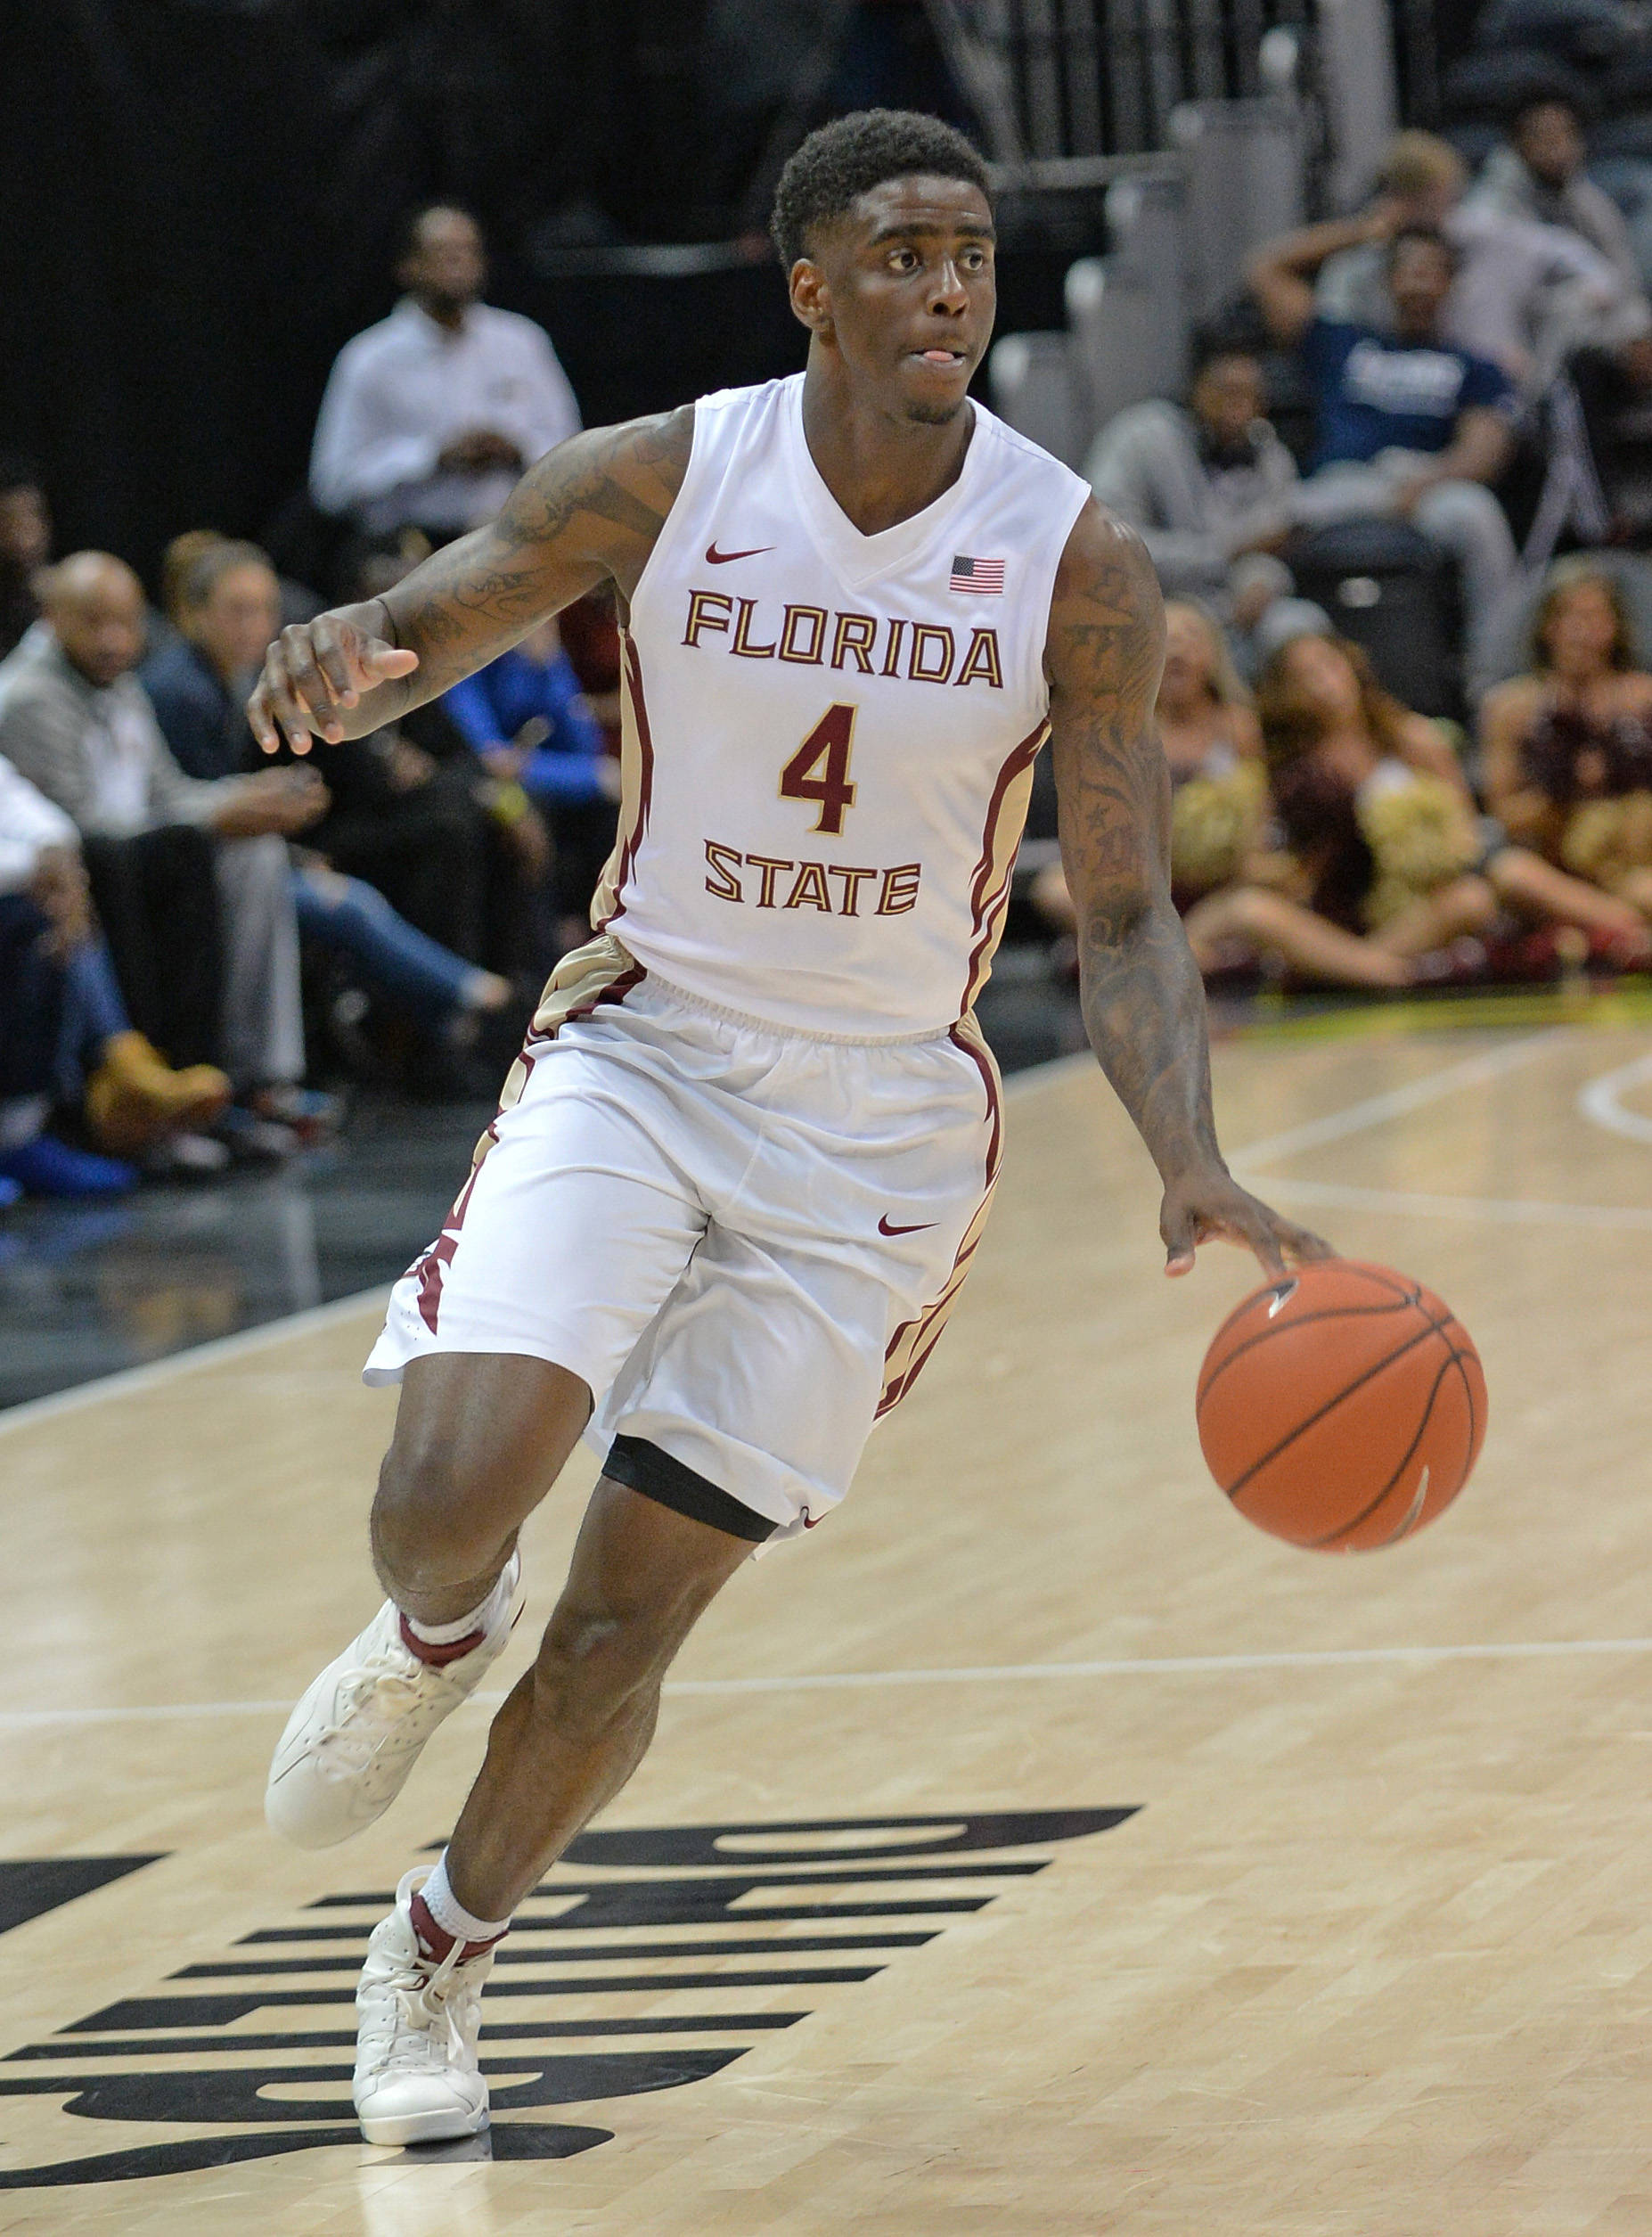 Florida State vs. VCU